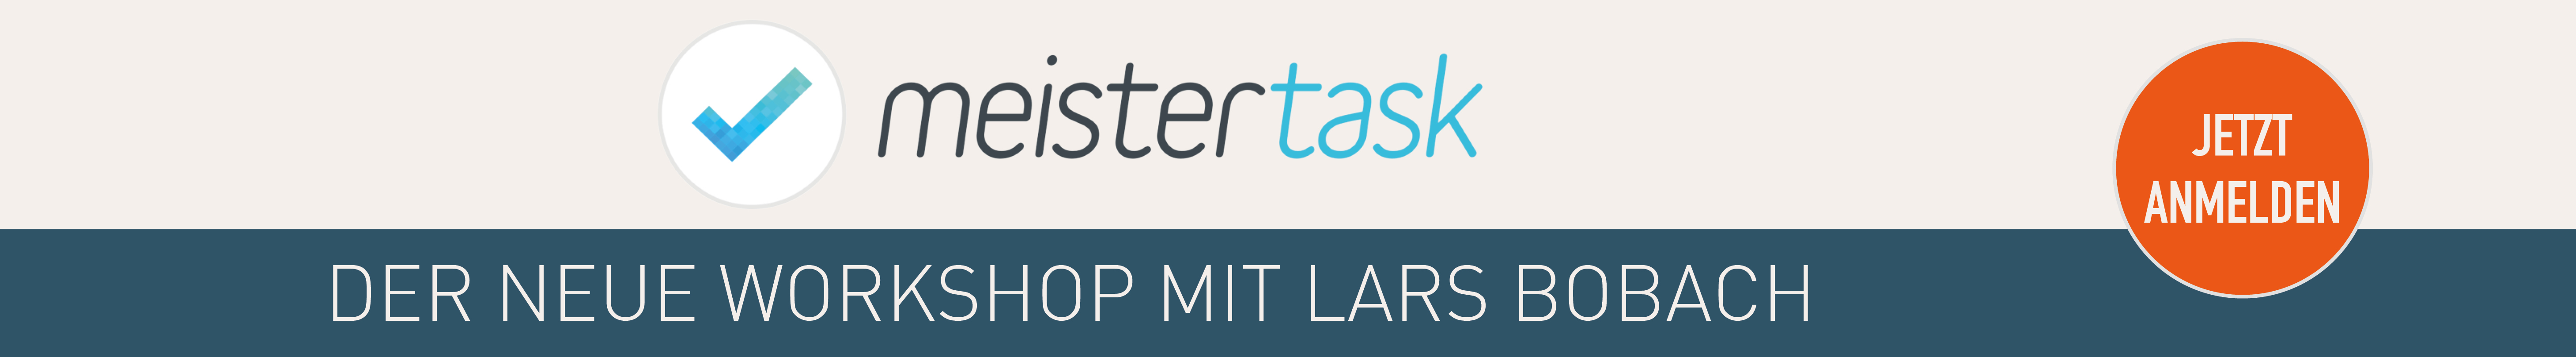 Meistertask Workshop Lars Bobach